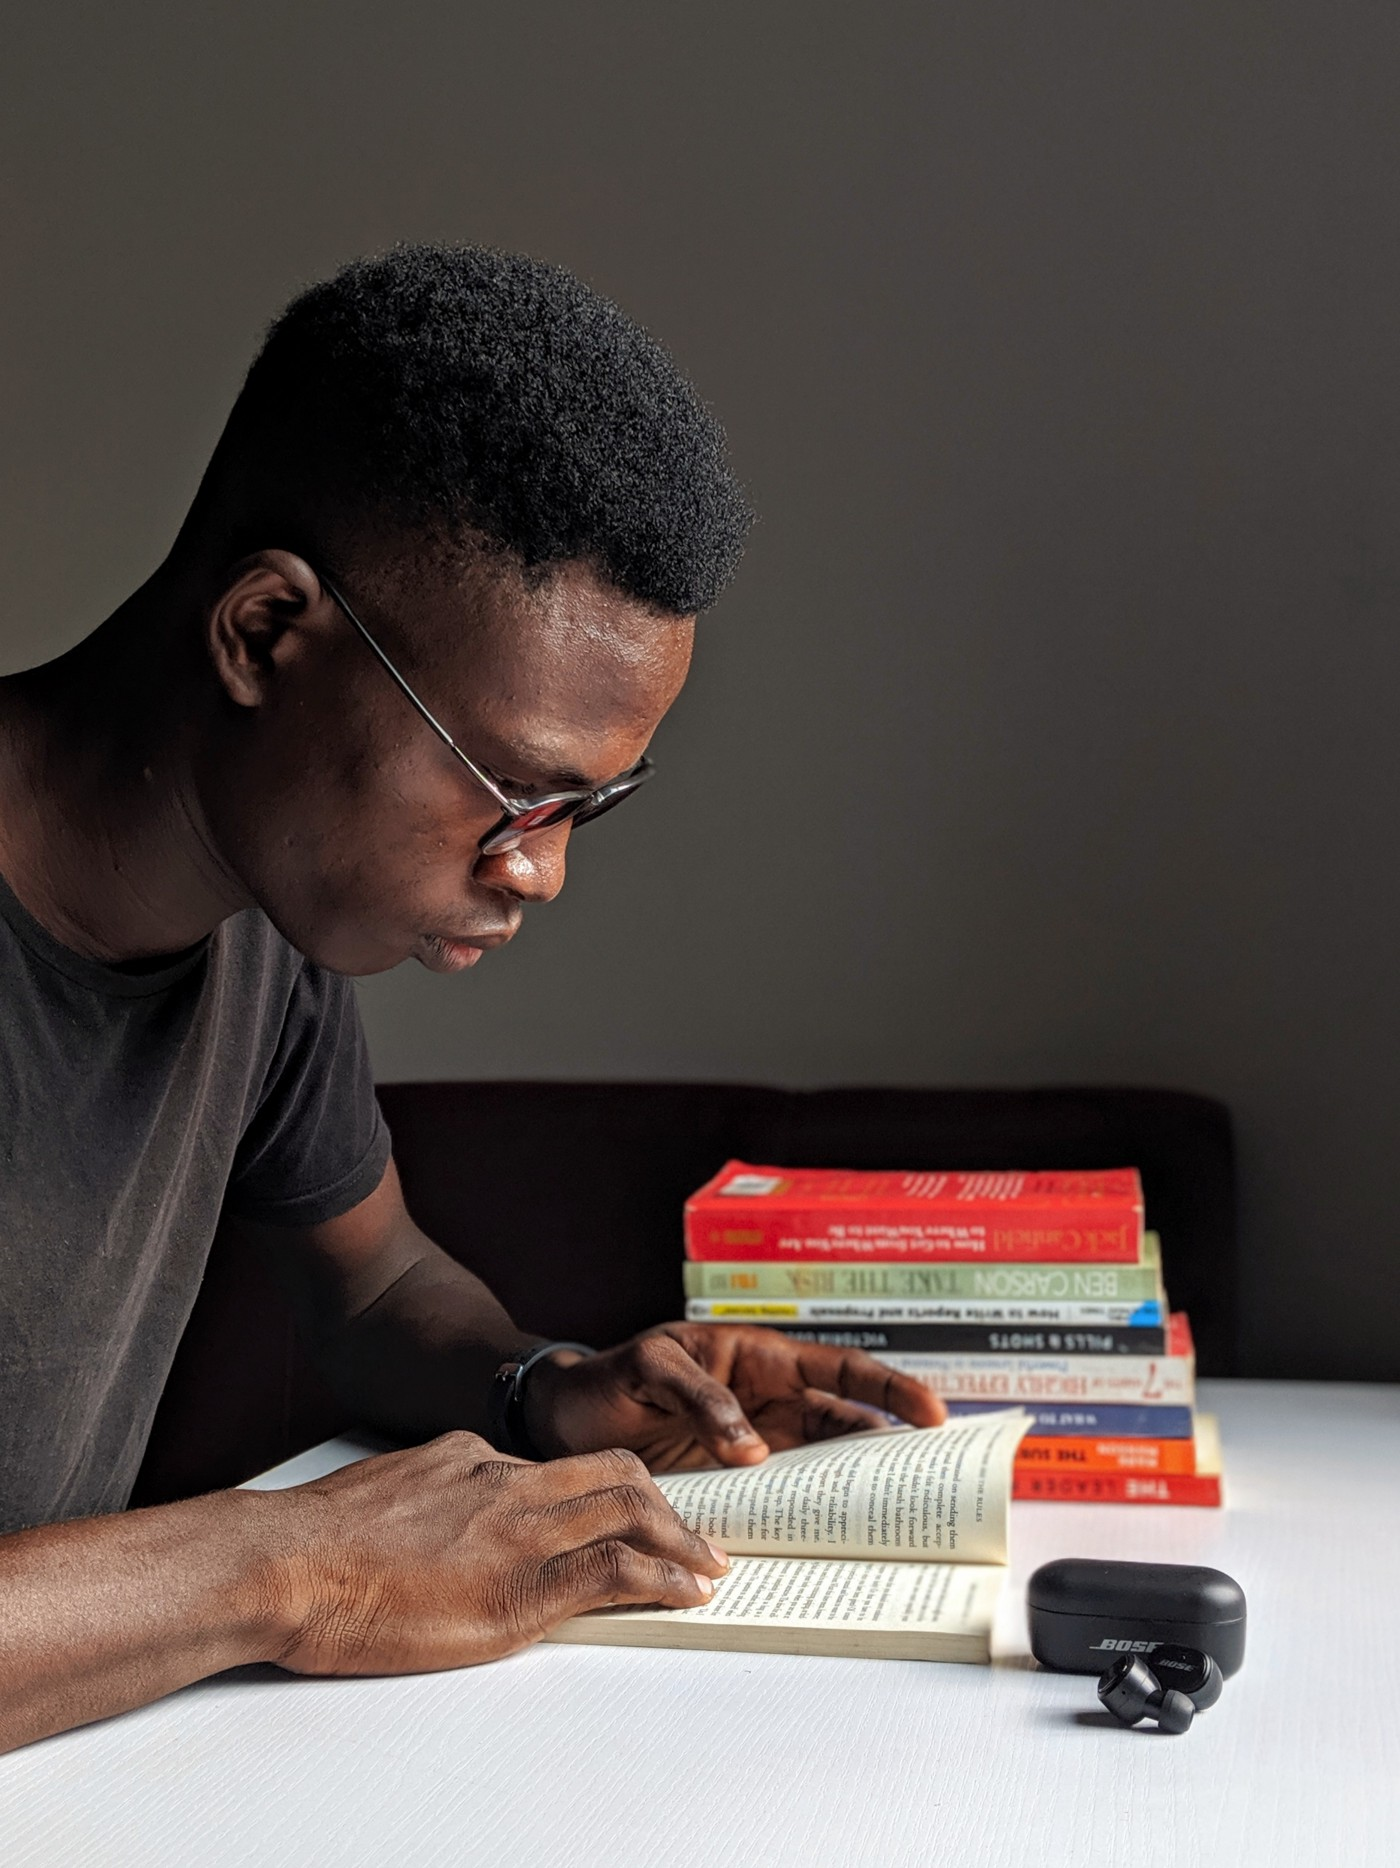 Black man reading at a desk with other books stacked next to him.